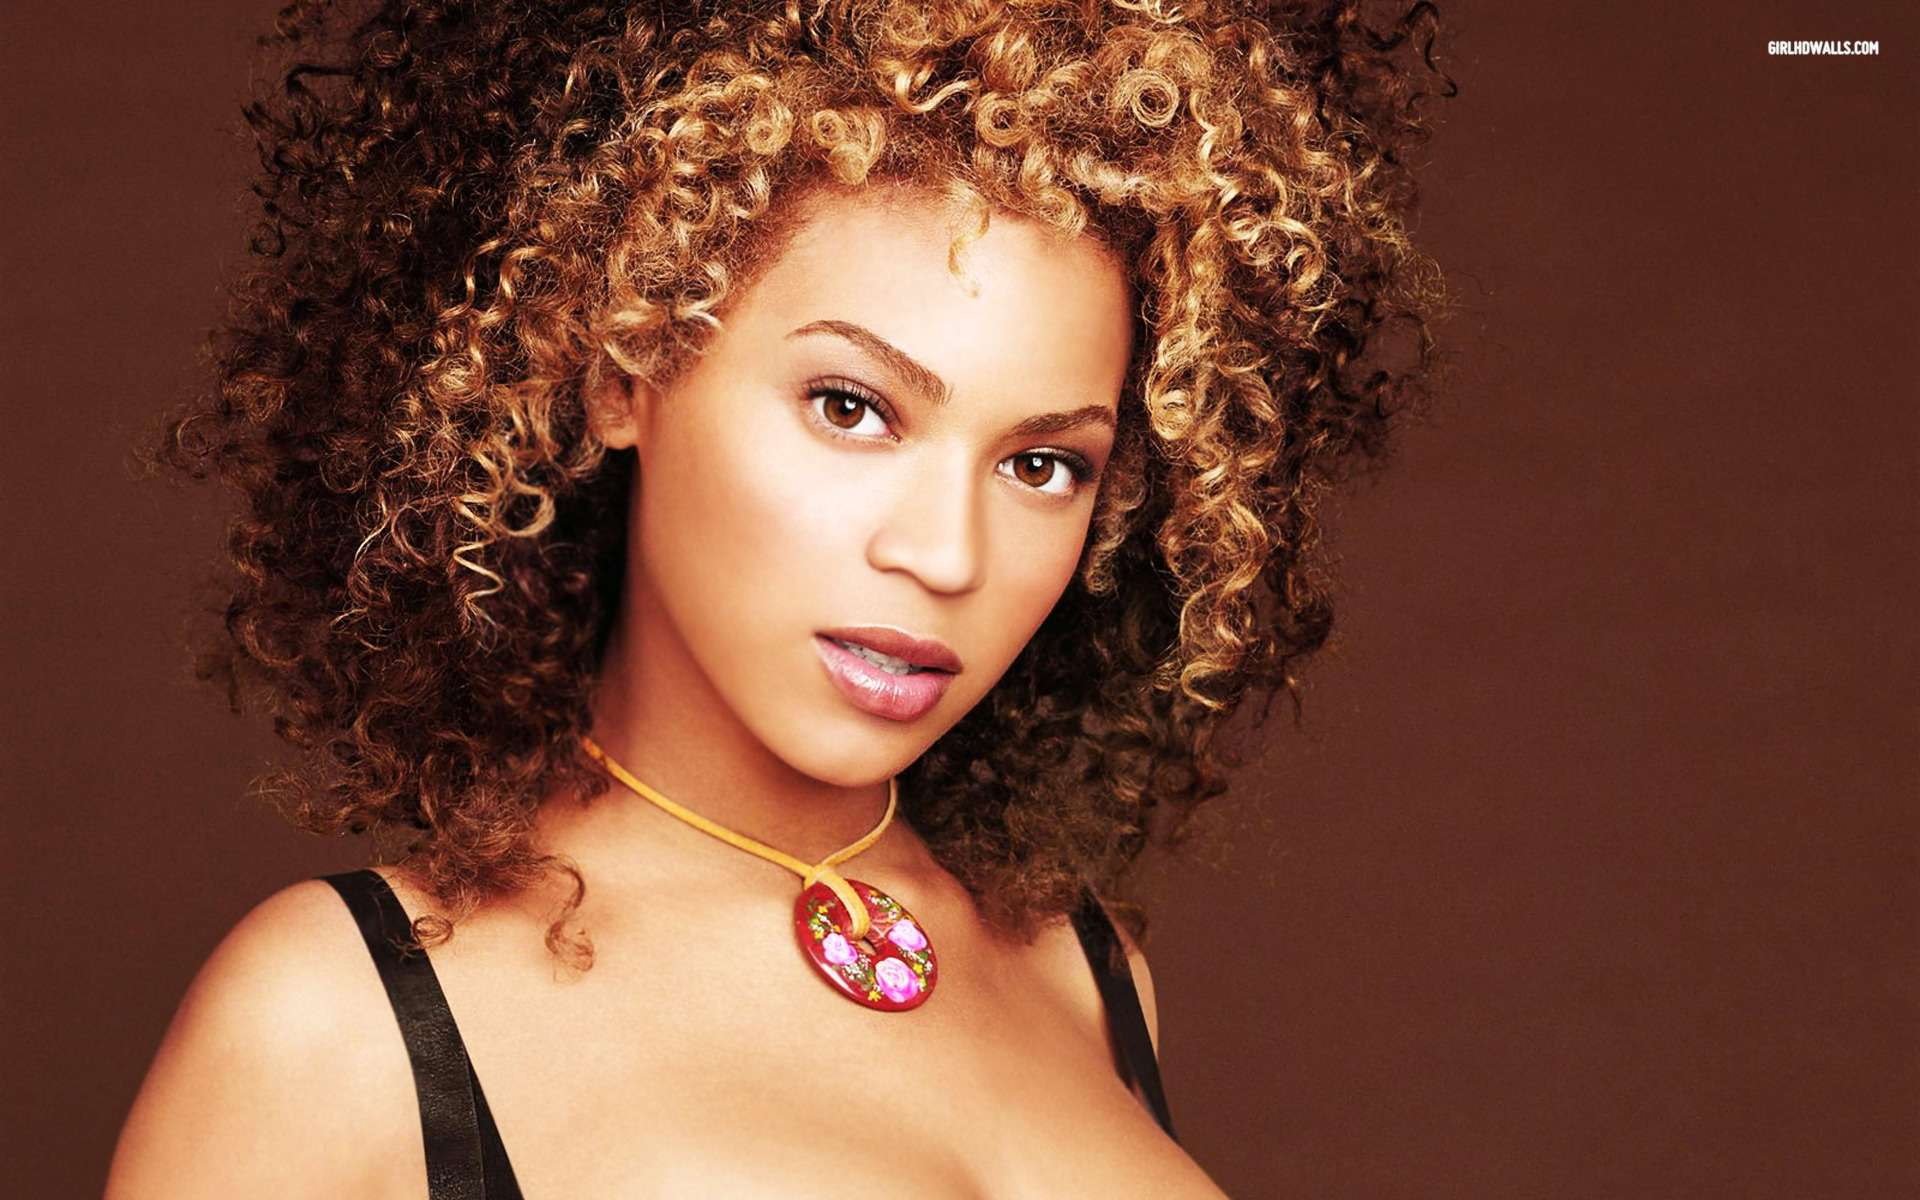 Beyonce Knowles 5 Wallpapers Hd Wallpapers